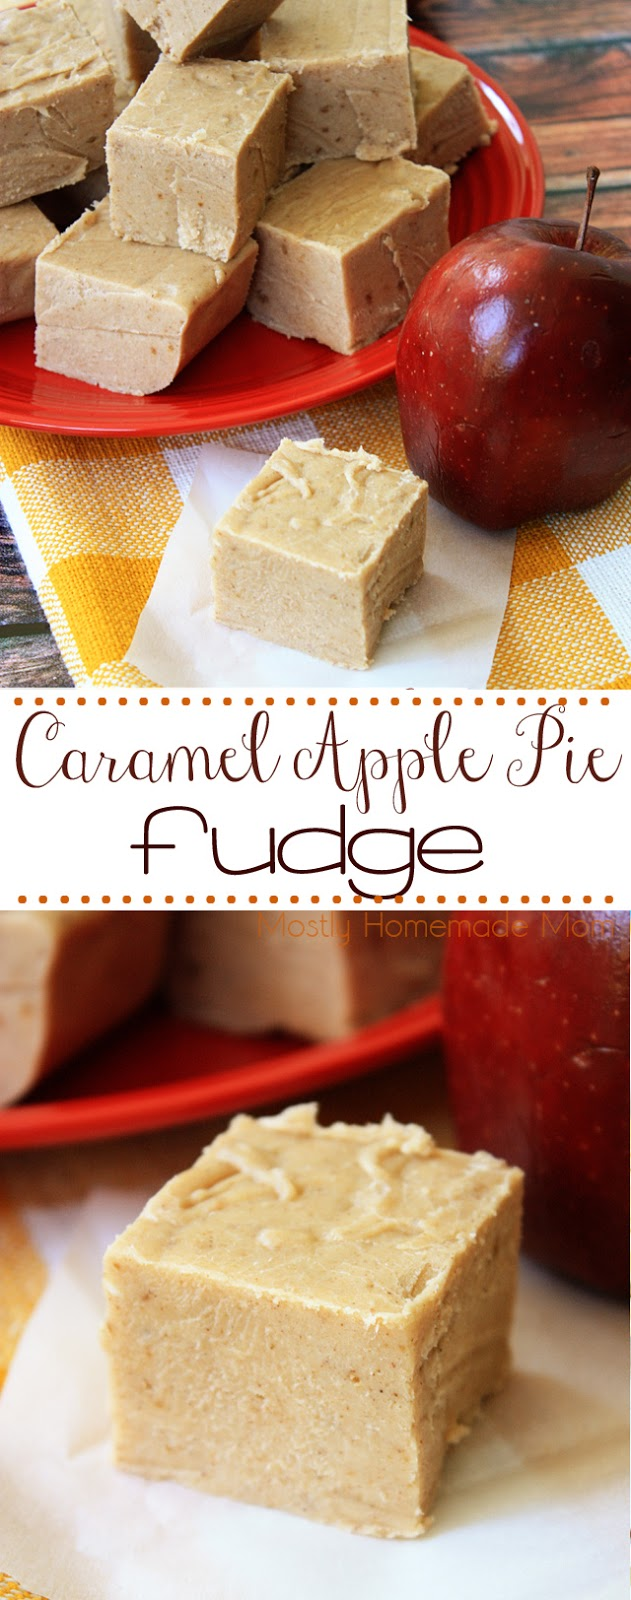 Caramel Apple Pie Fudge Recipe